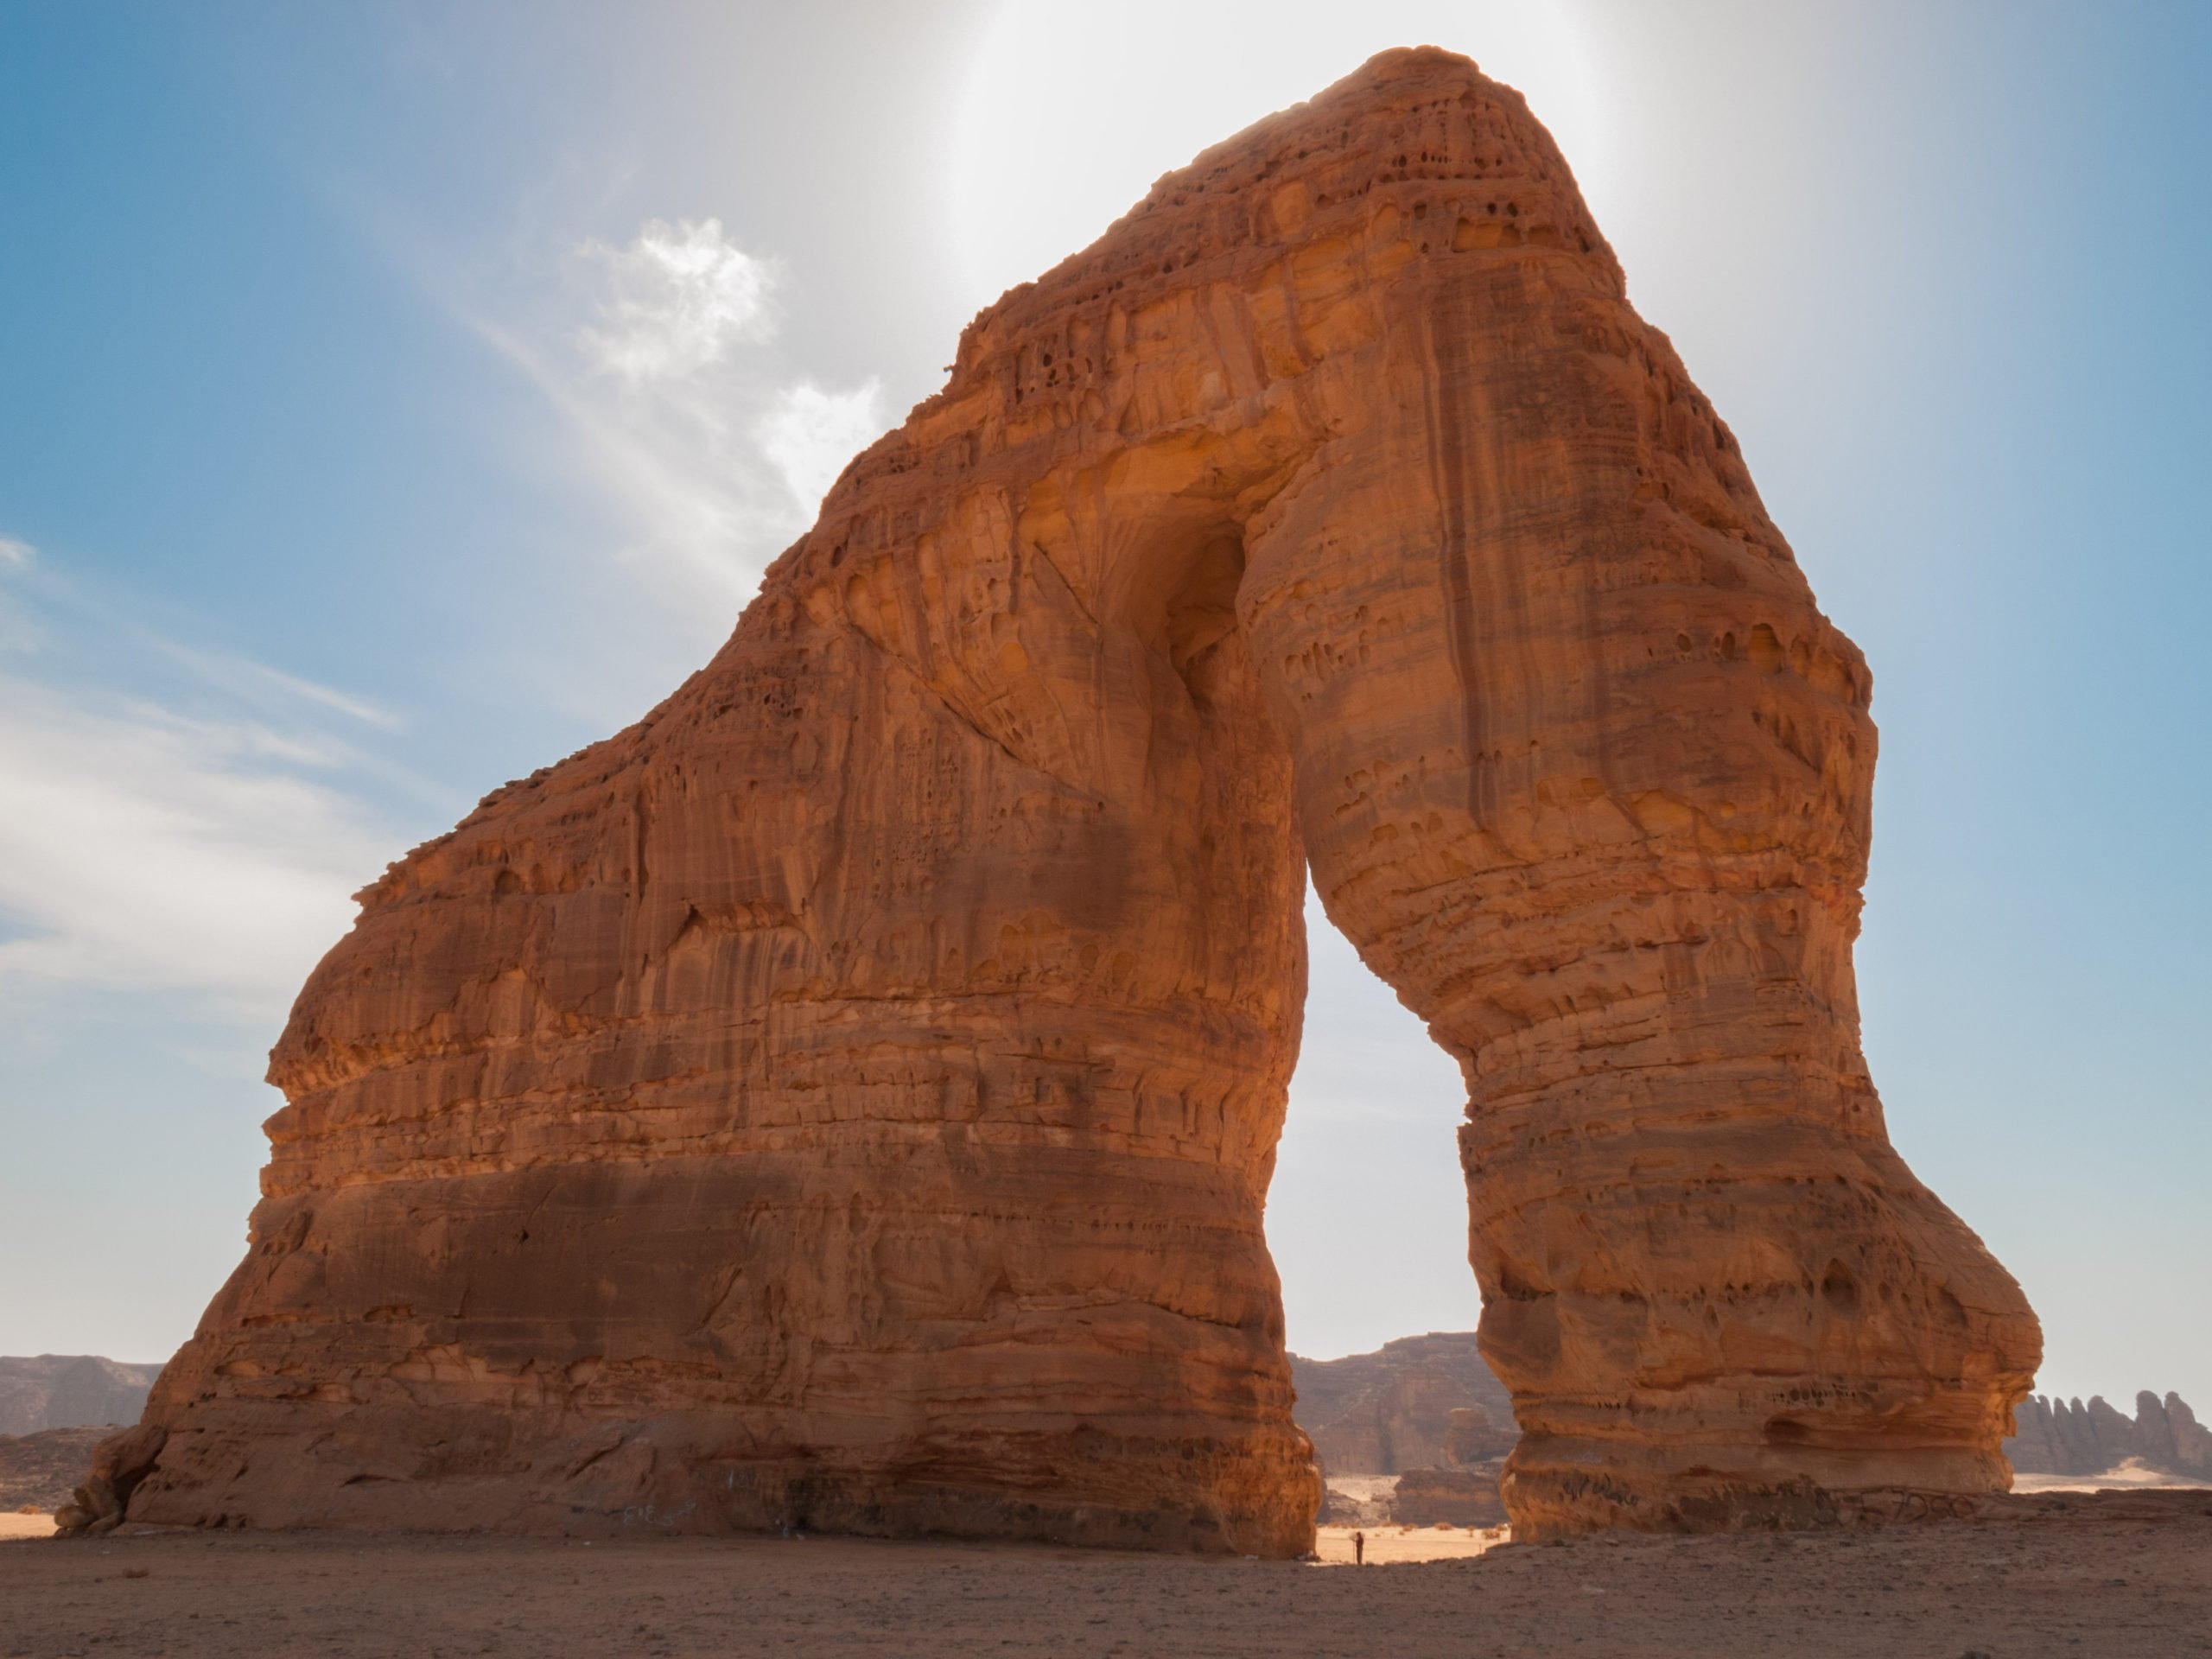 Discover The Famous Elephant Of Madain Saleh During The 13 Day Highlights Of Israel, Saudi Arabia & Jordan Package Tour